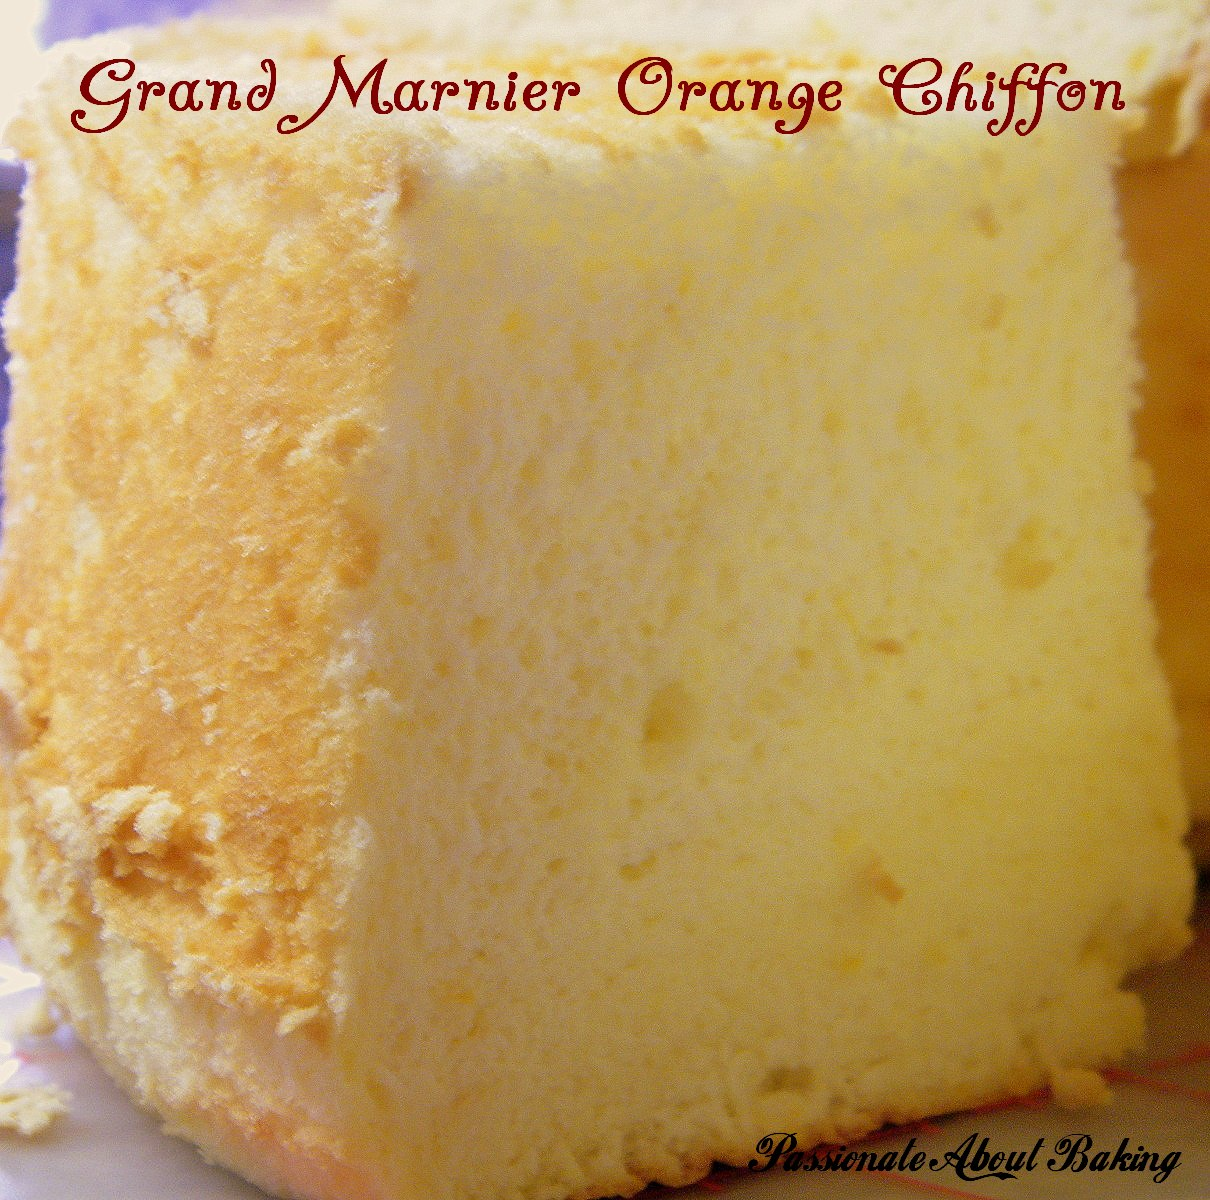 Grand Marnier Orange Chiffon Cake Recipe